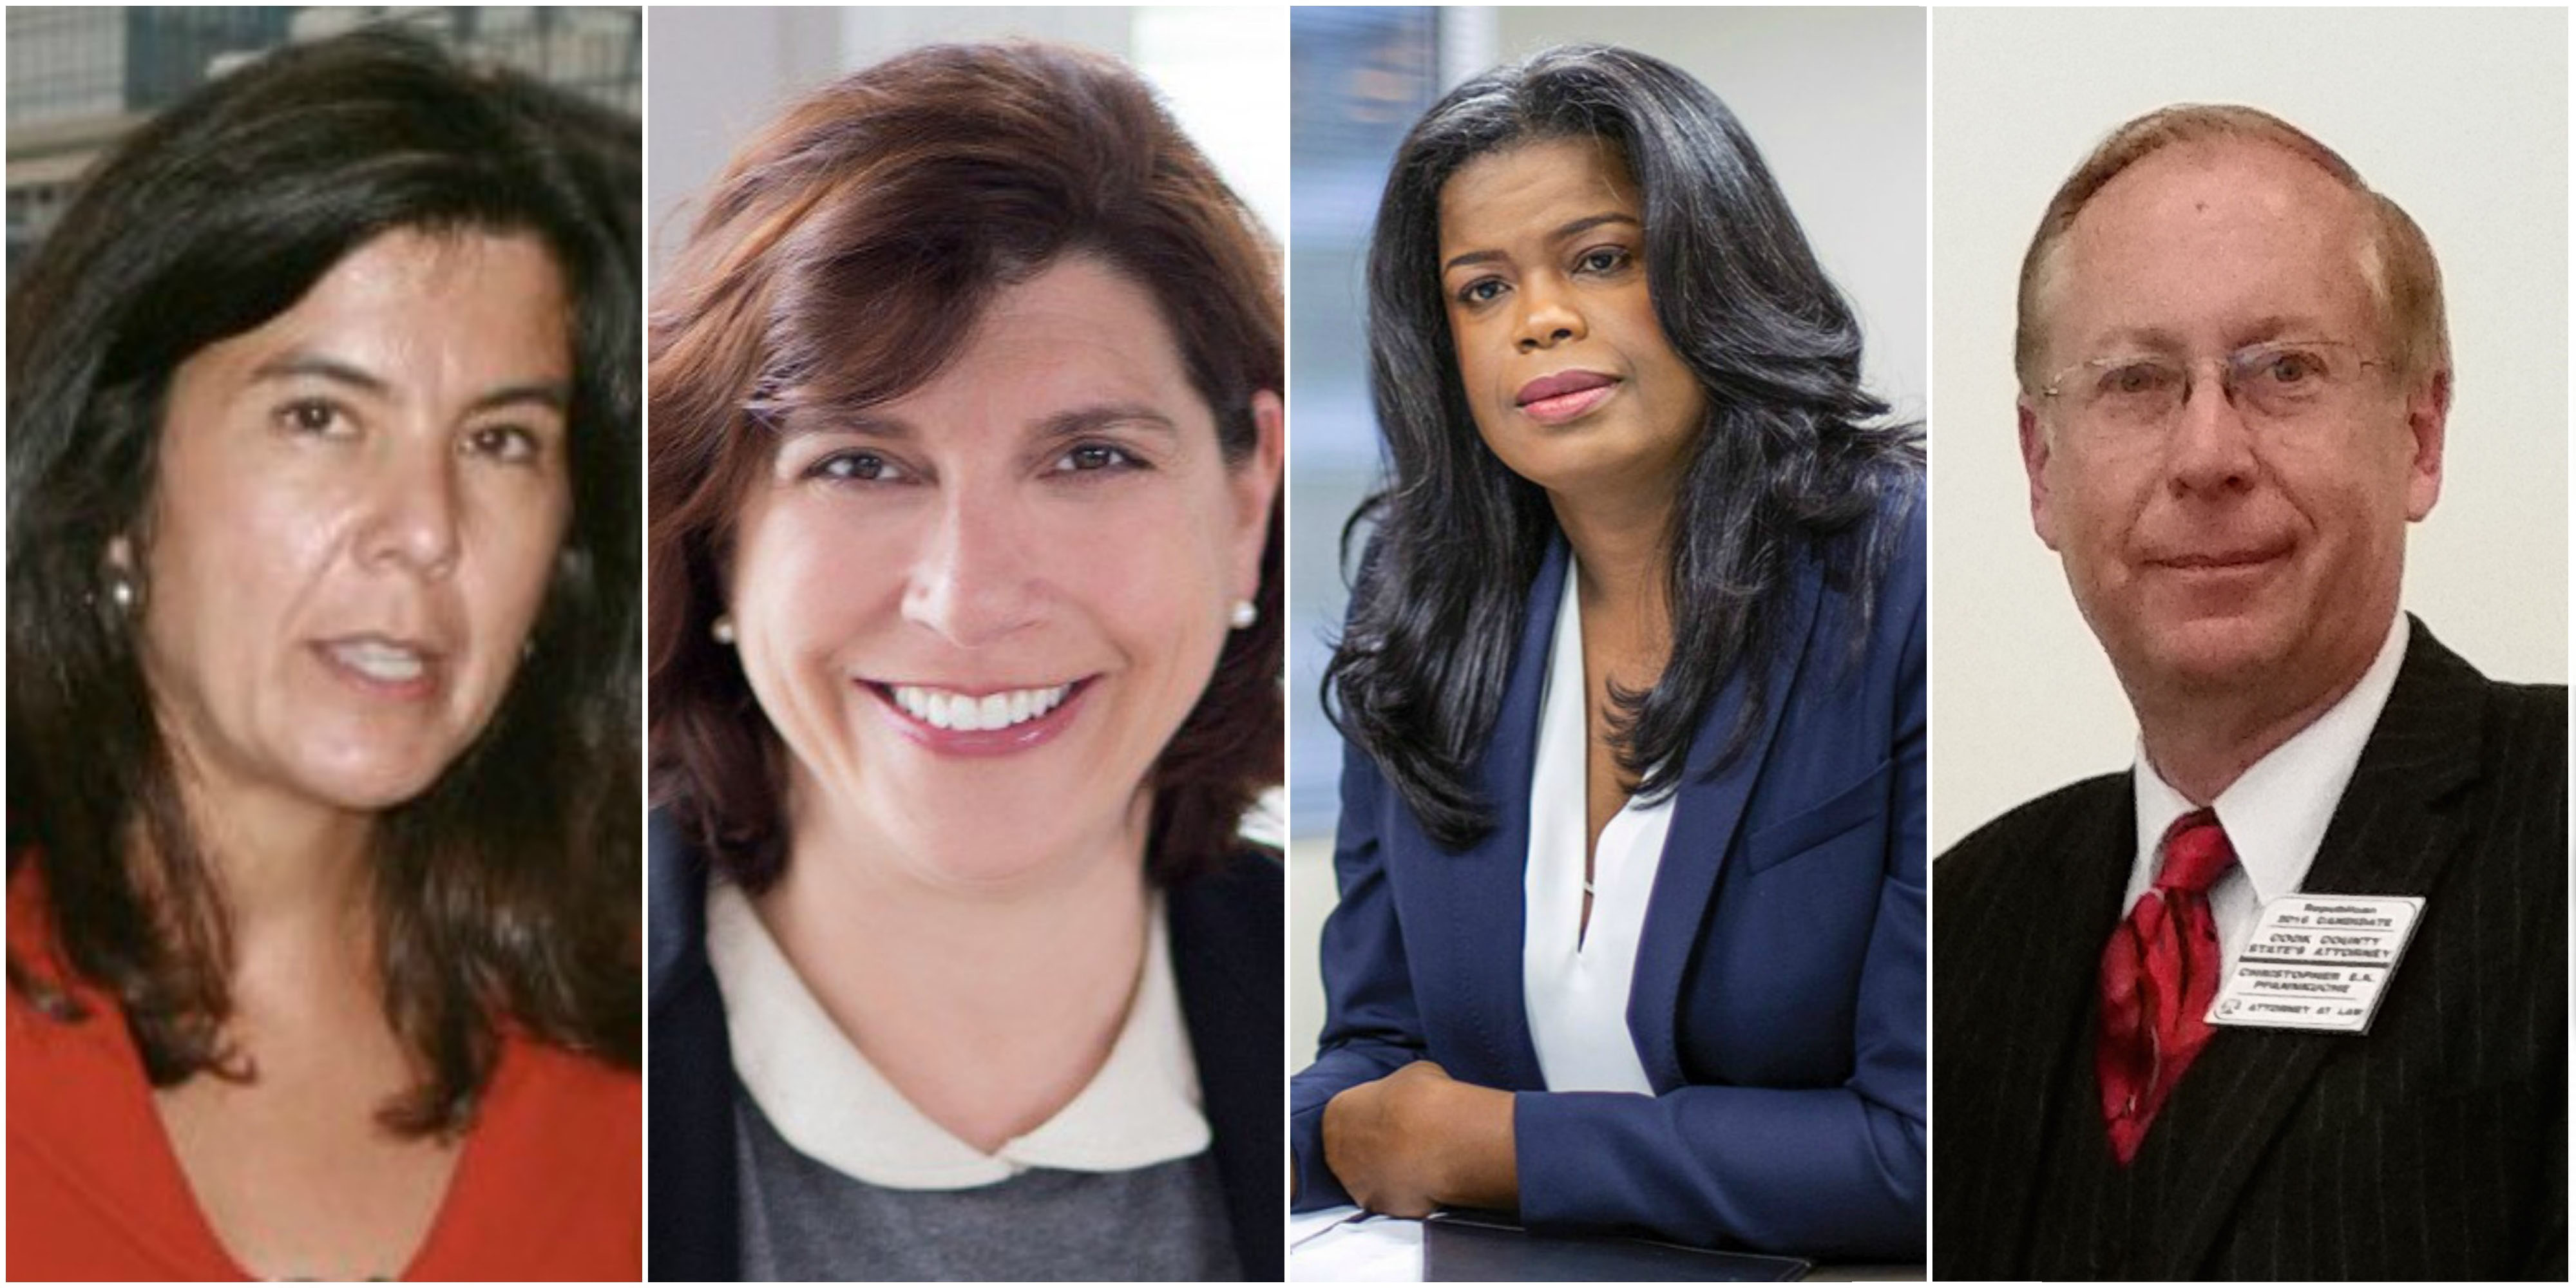 Candidates for Cook County State's Attorney: Anita Alvarez (D), Donna More (D), Kim Foxx (D) and Christopher E. K. Pfannkuche (R)